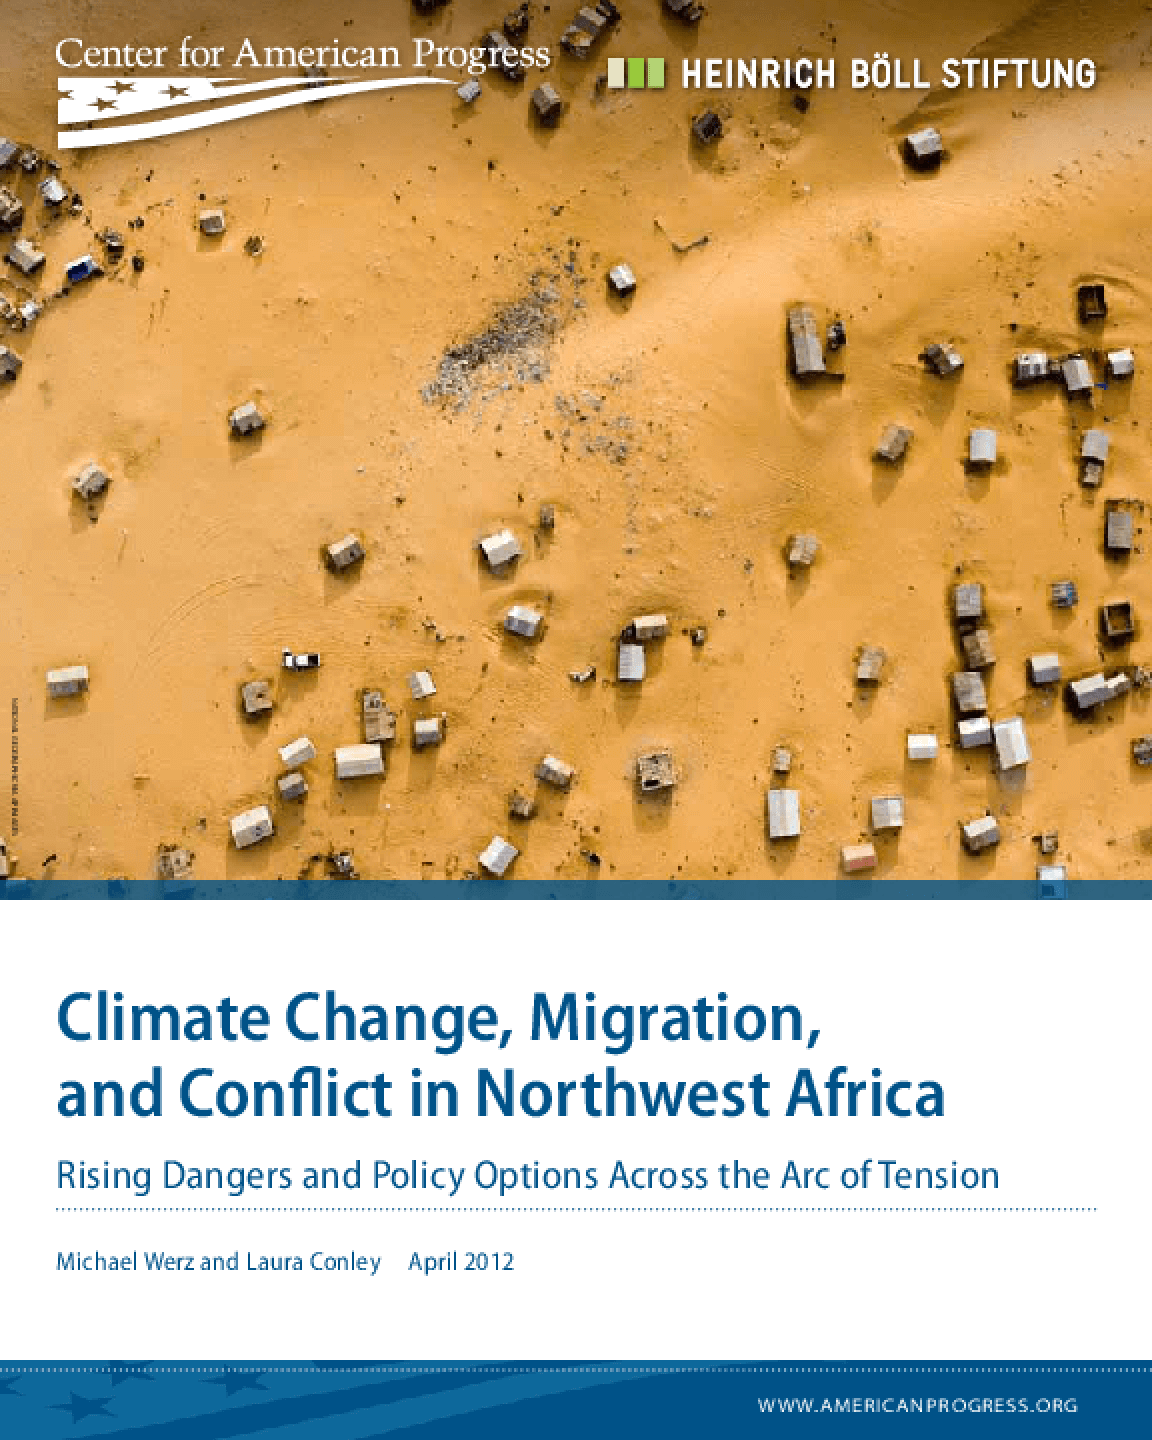 Climate Change, Migration, and Conflict in Northwest Africa